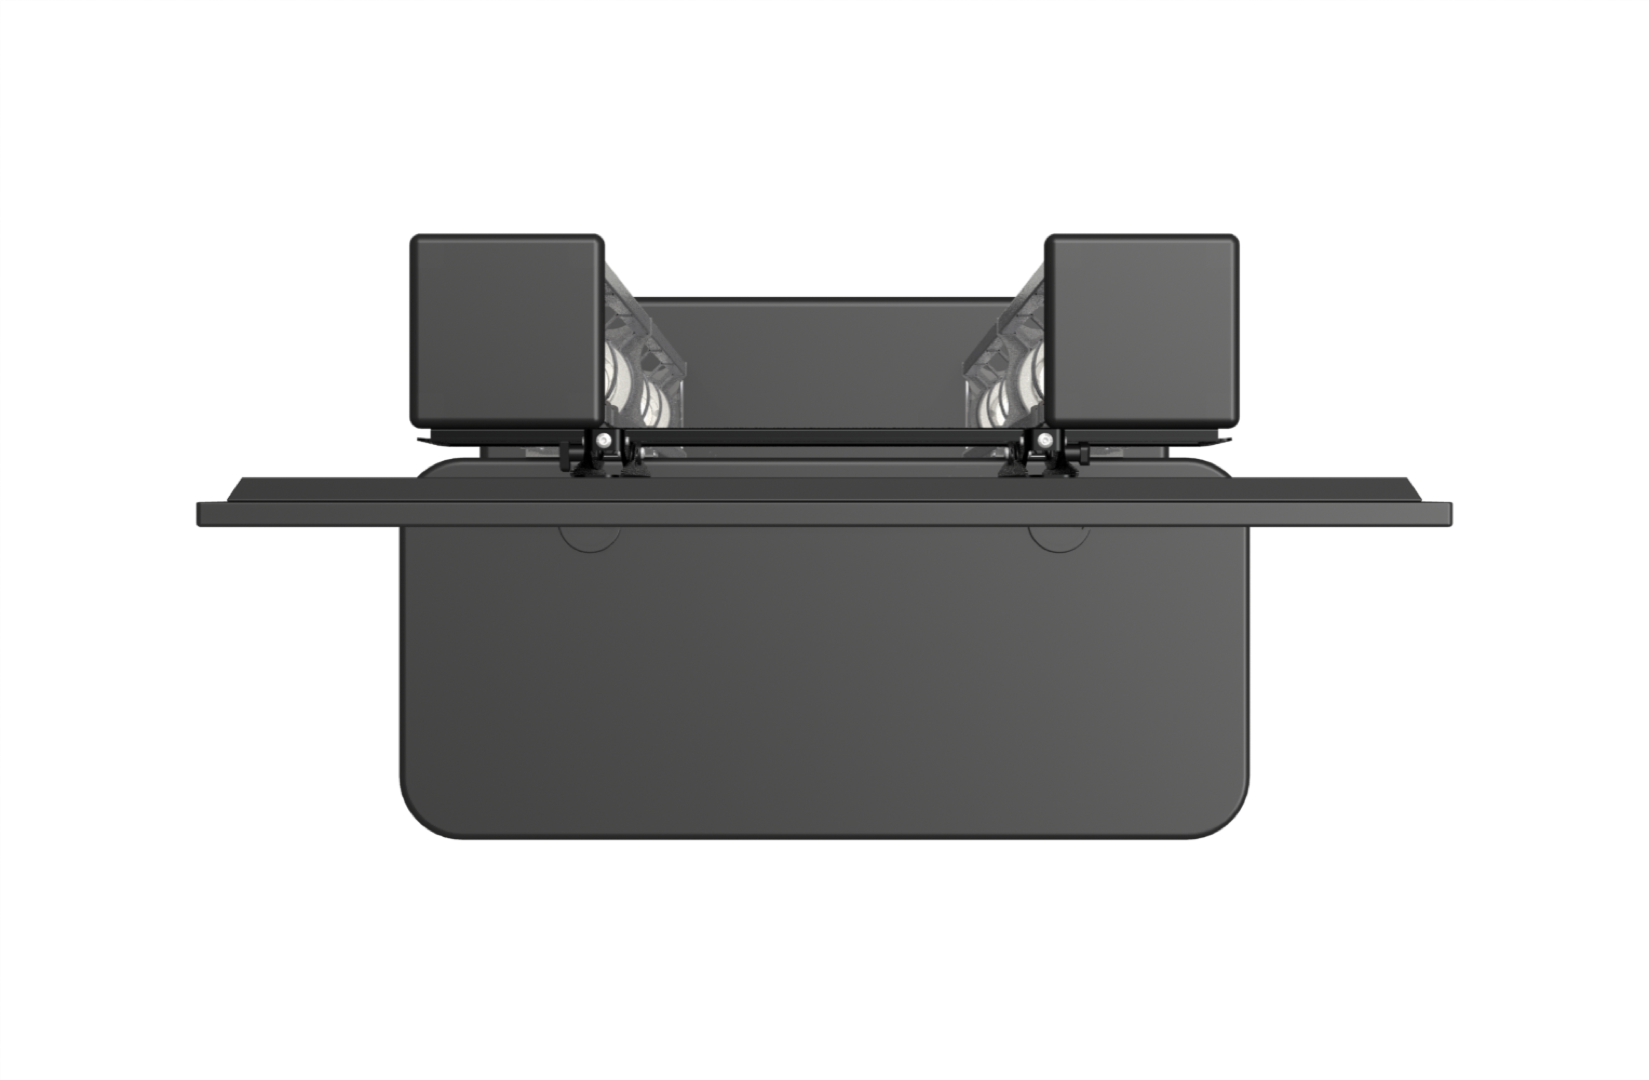 75  Tv Top View Png - Small Televisions Samsung UN19F4000 720p 60Hz ... for Tv Unit Top View  174mzq